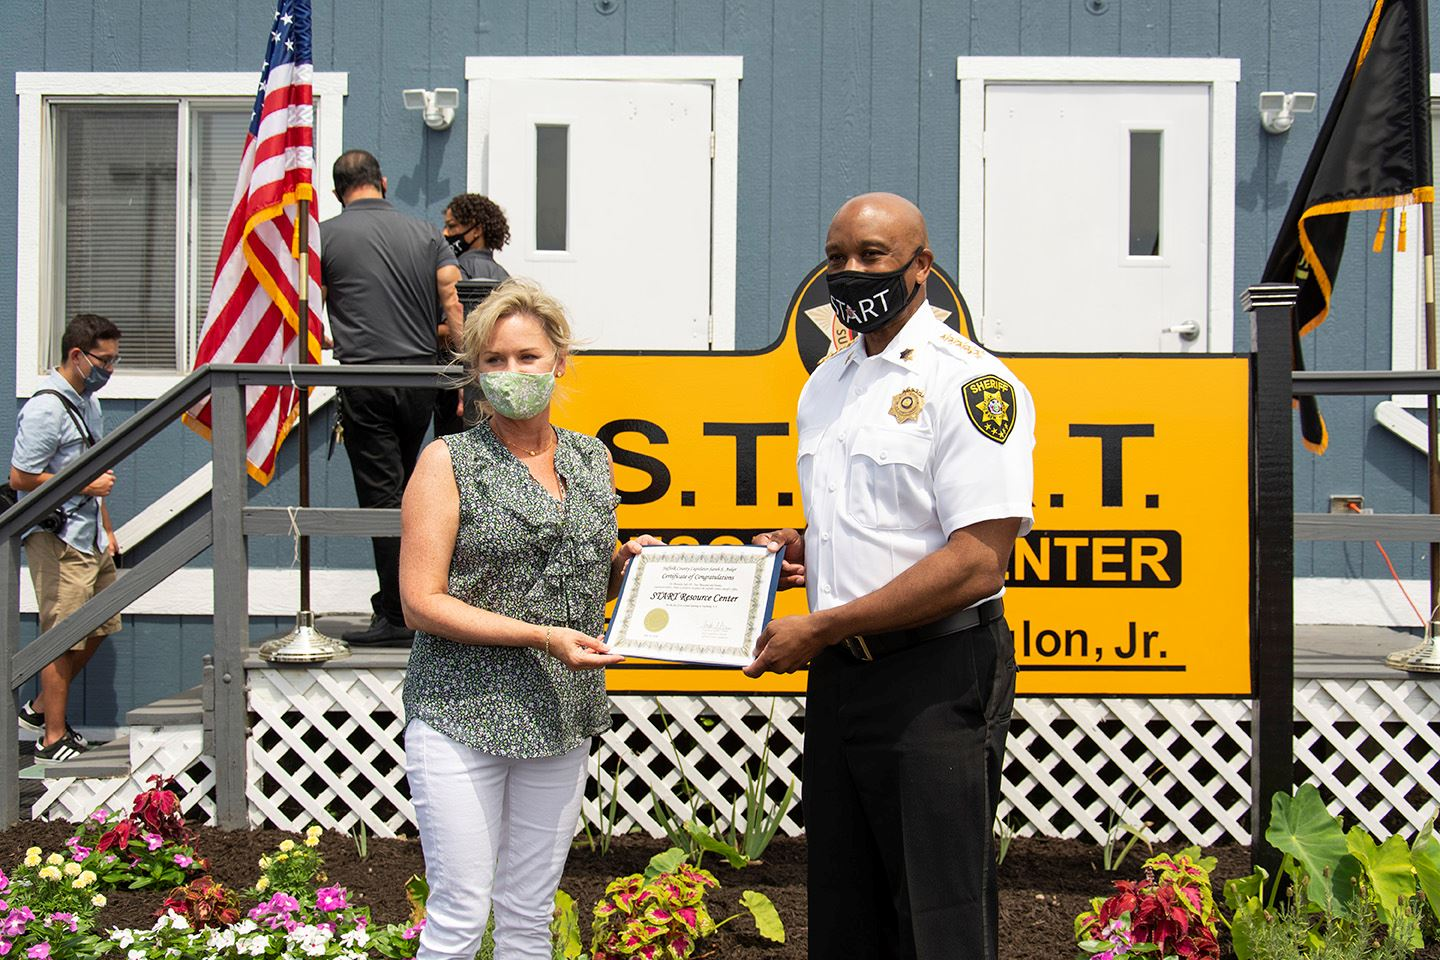 Pictured L-R: Suffolk County Legislator Sarah Anker and Suffolk County Sheriff Errol D. Toulon, Jr.